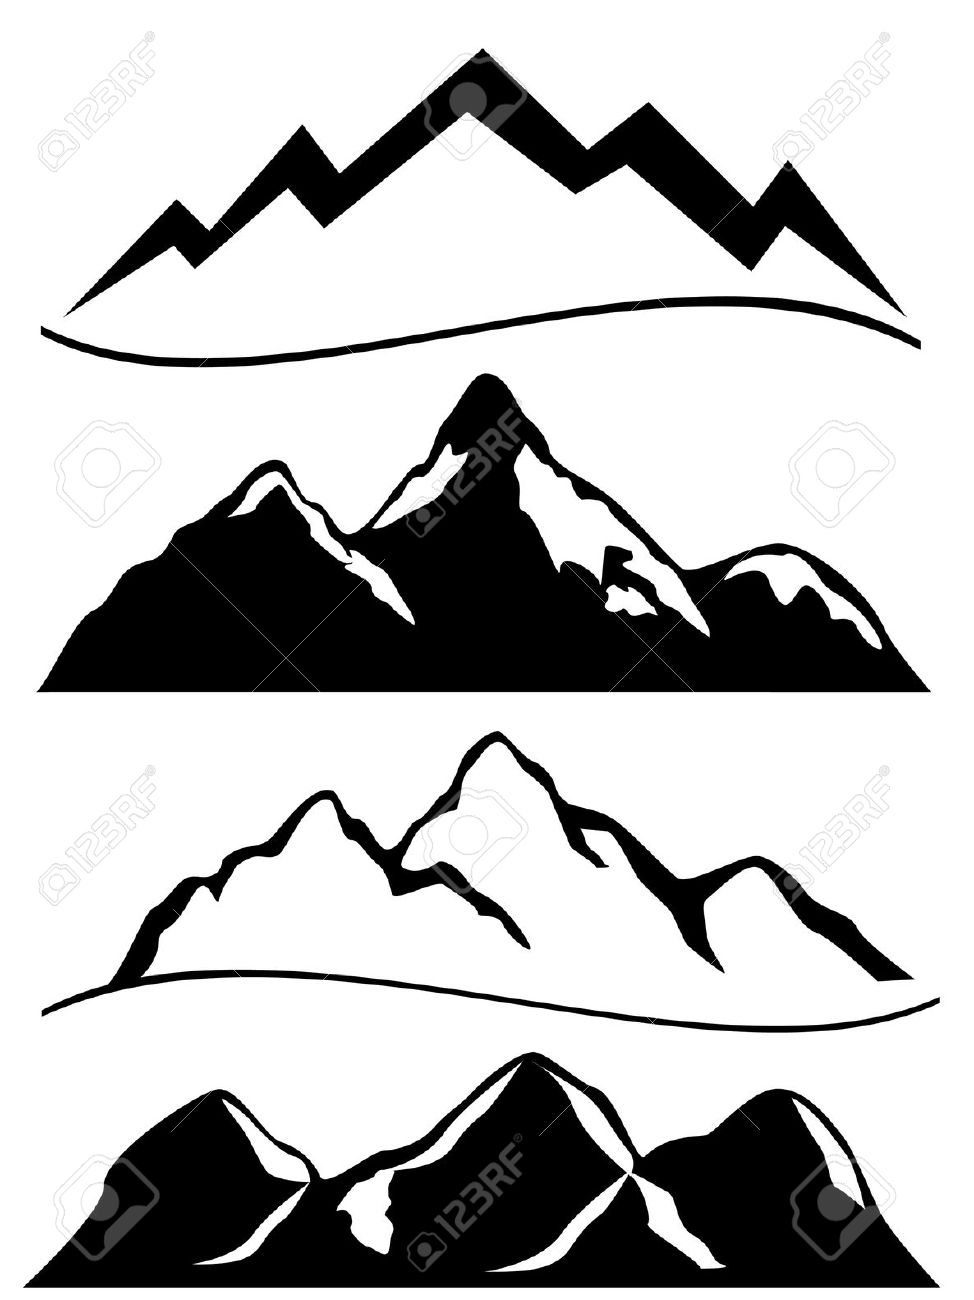 990 Snowy Peak Stock Vector Illustration And Royalty Free Snowy.